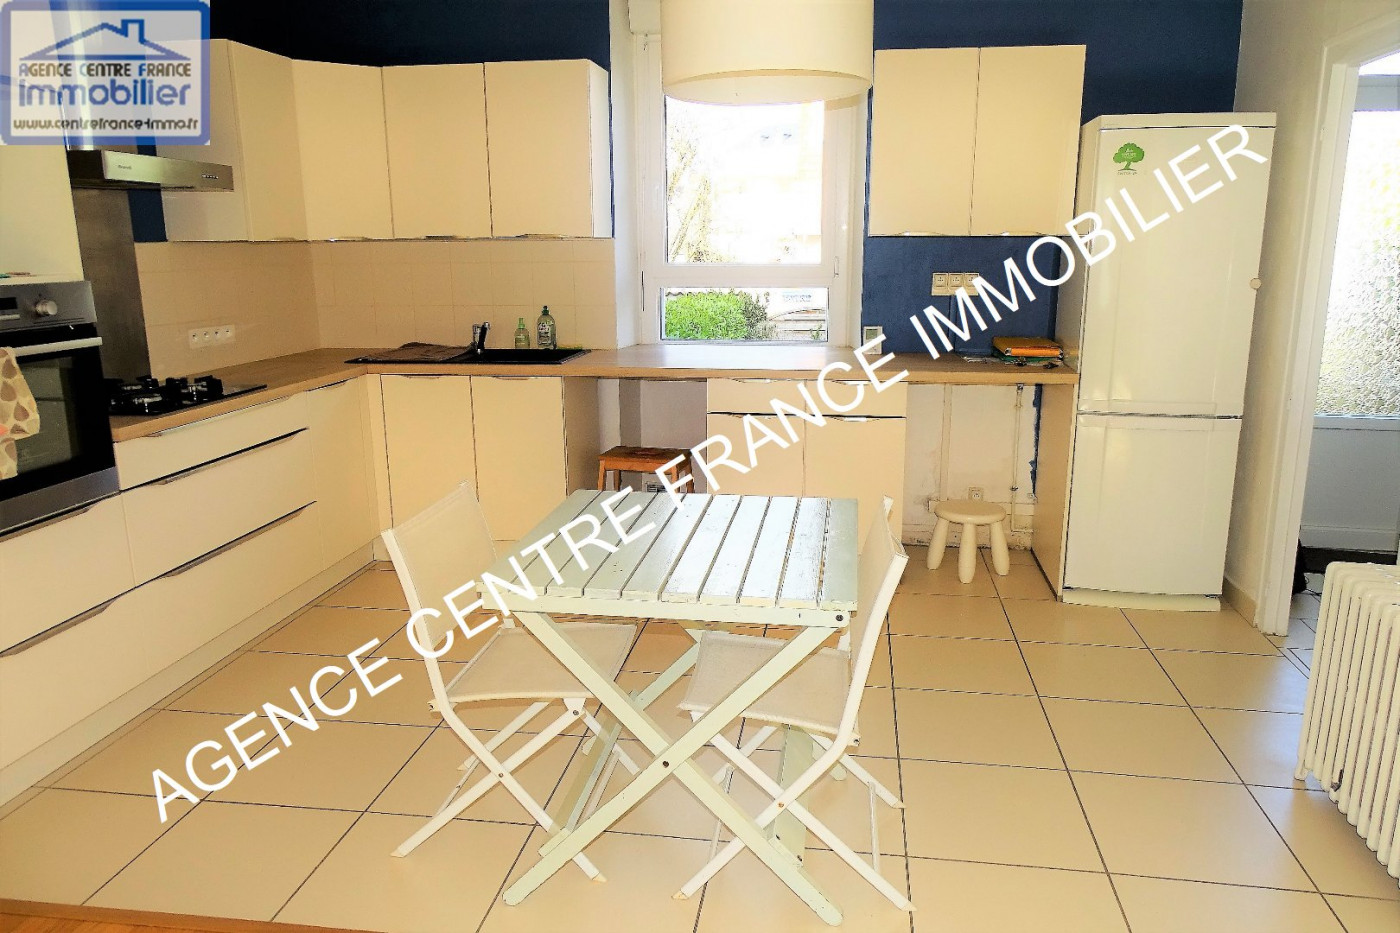 A vendre Bourges 030011334 Agence centre france immobilier